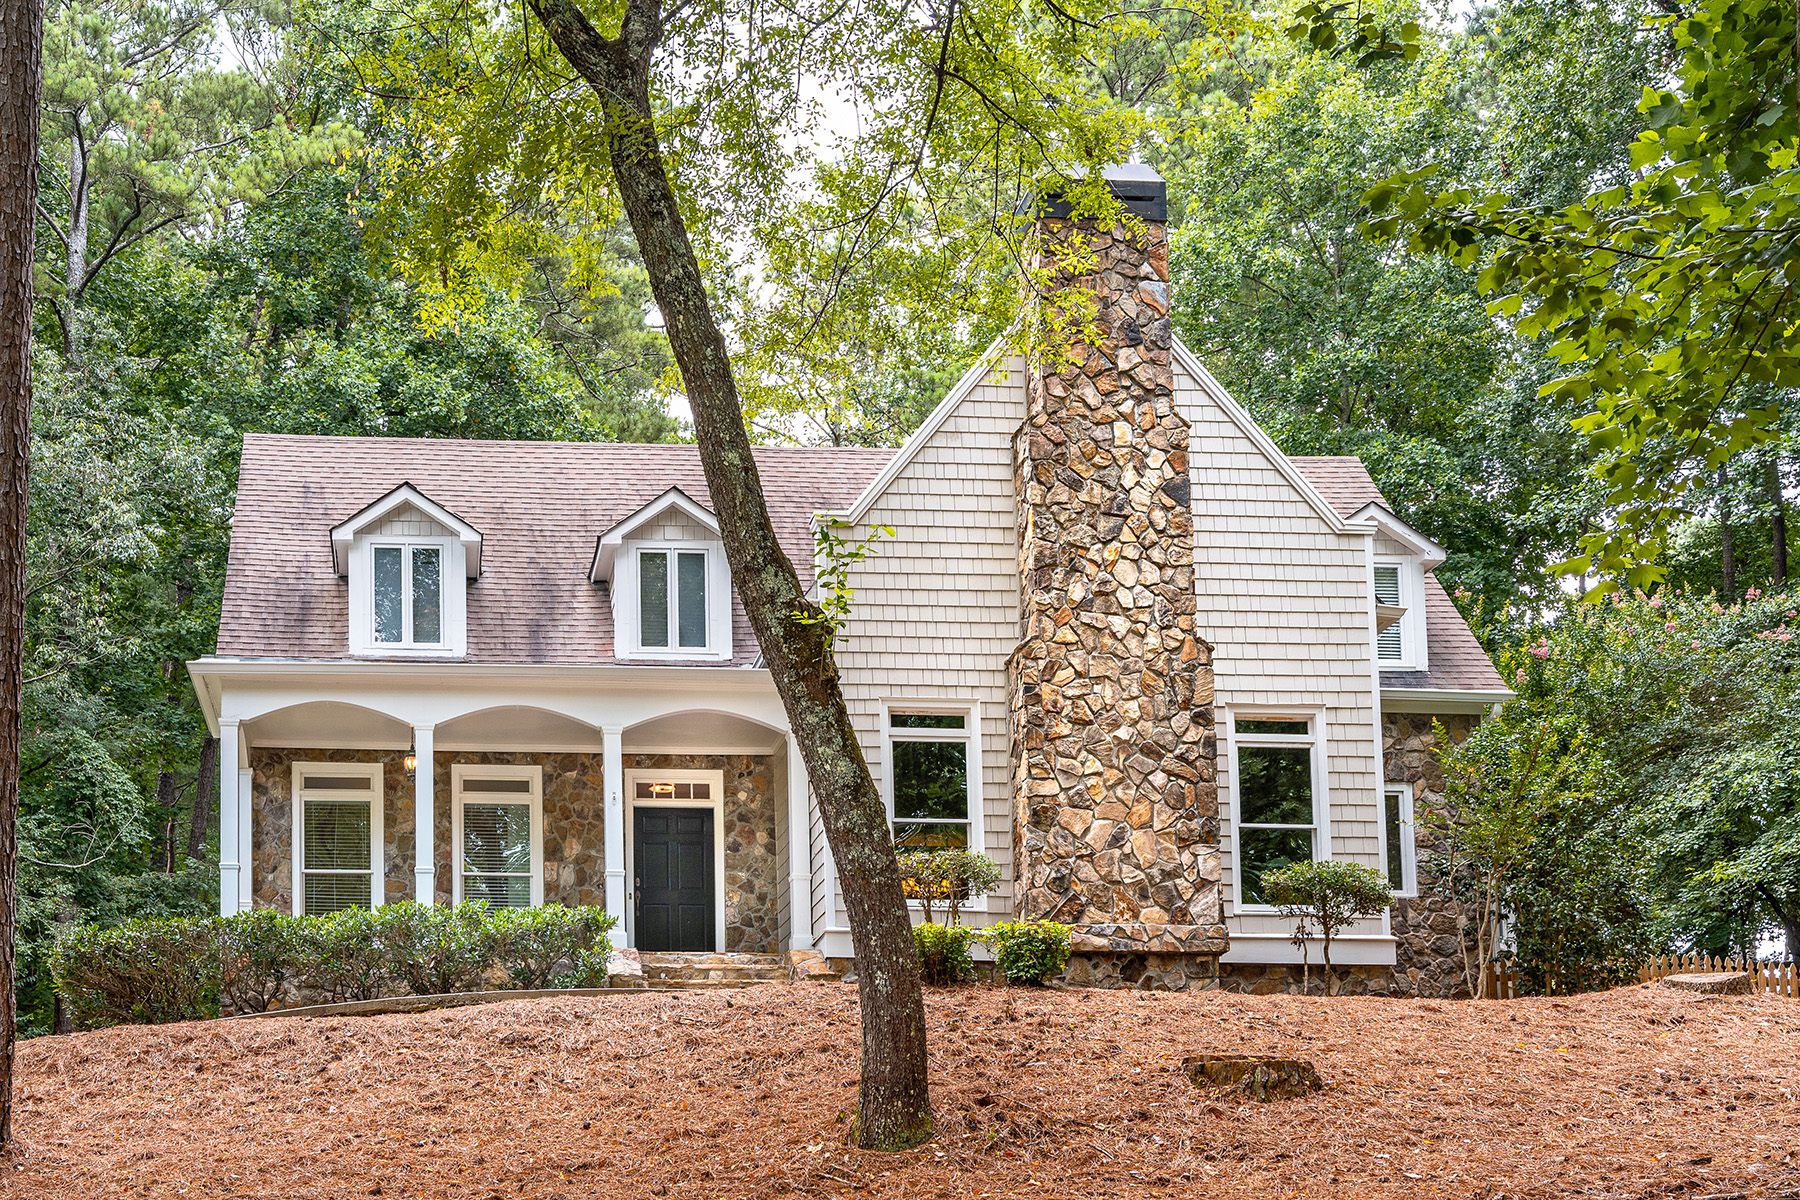 Property のために 売買 アット Charming Home On 3.59 Acres In Milton 2105 Double Creek Lane, Milton, ジョージア 30004 アメリカ